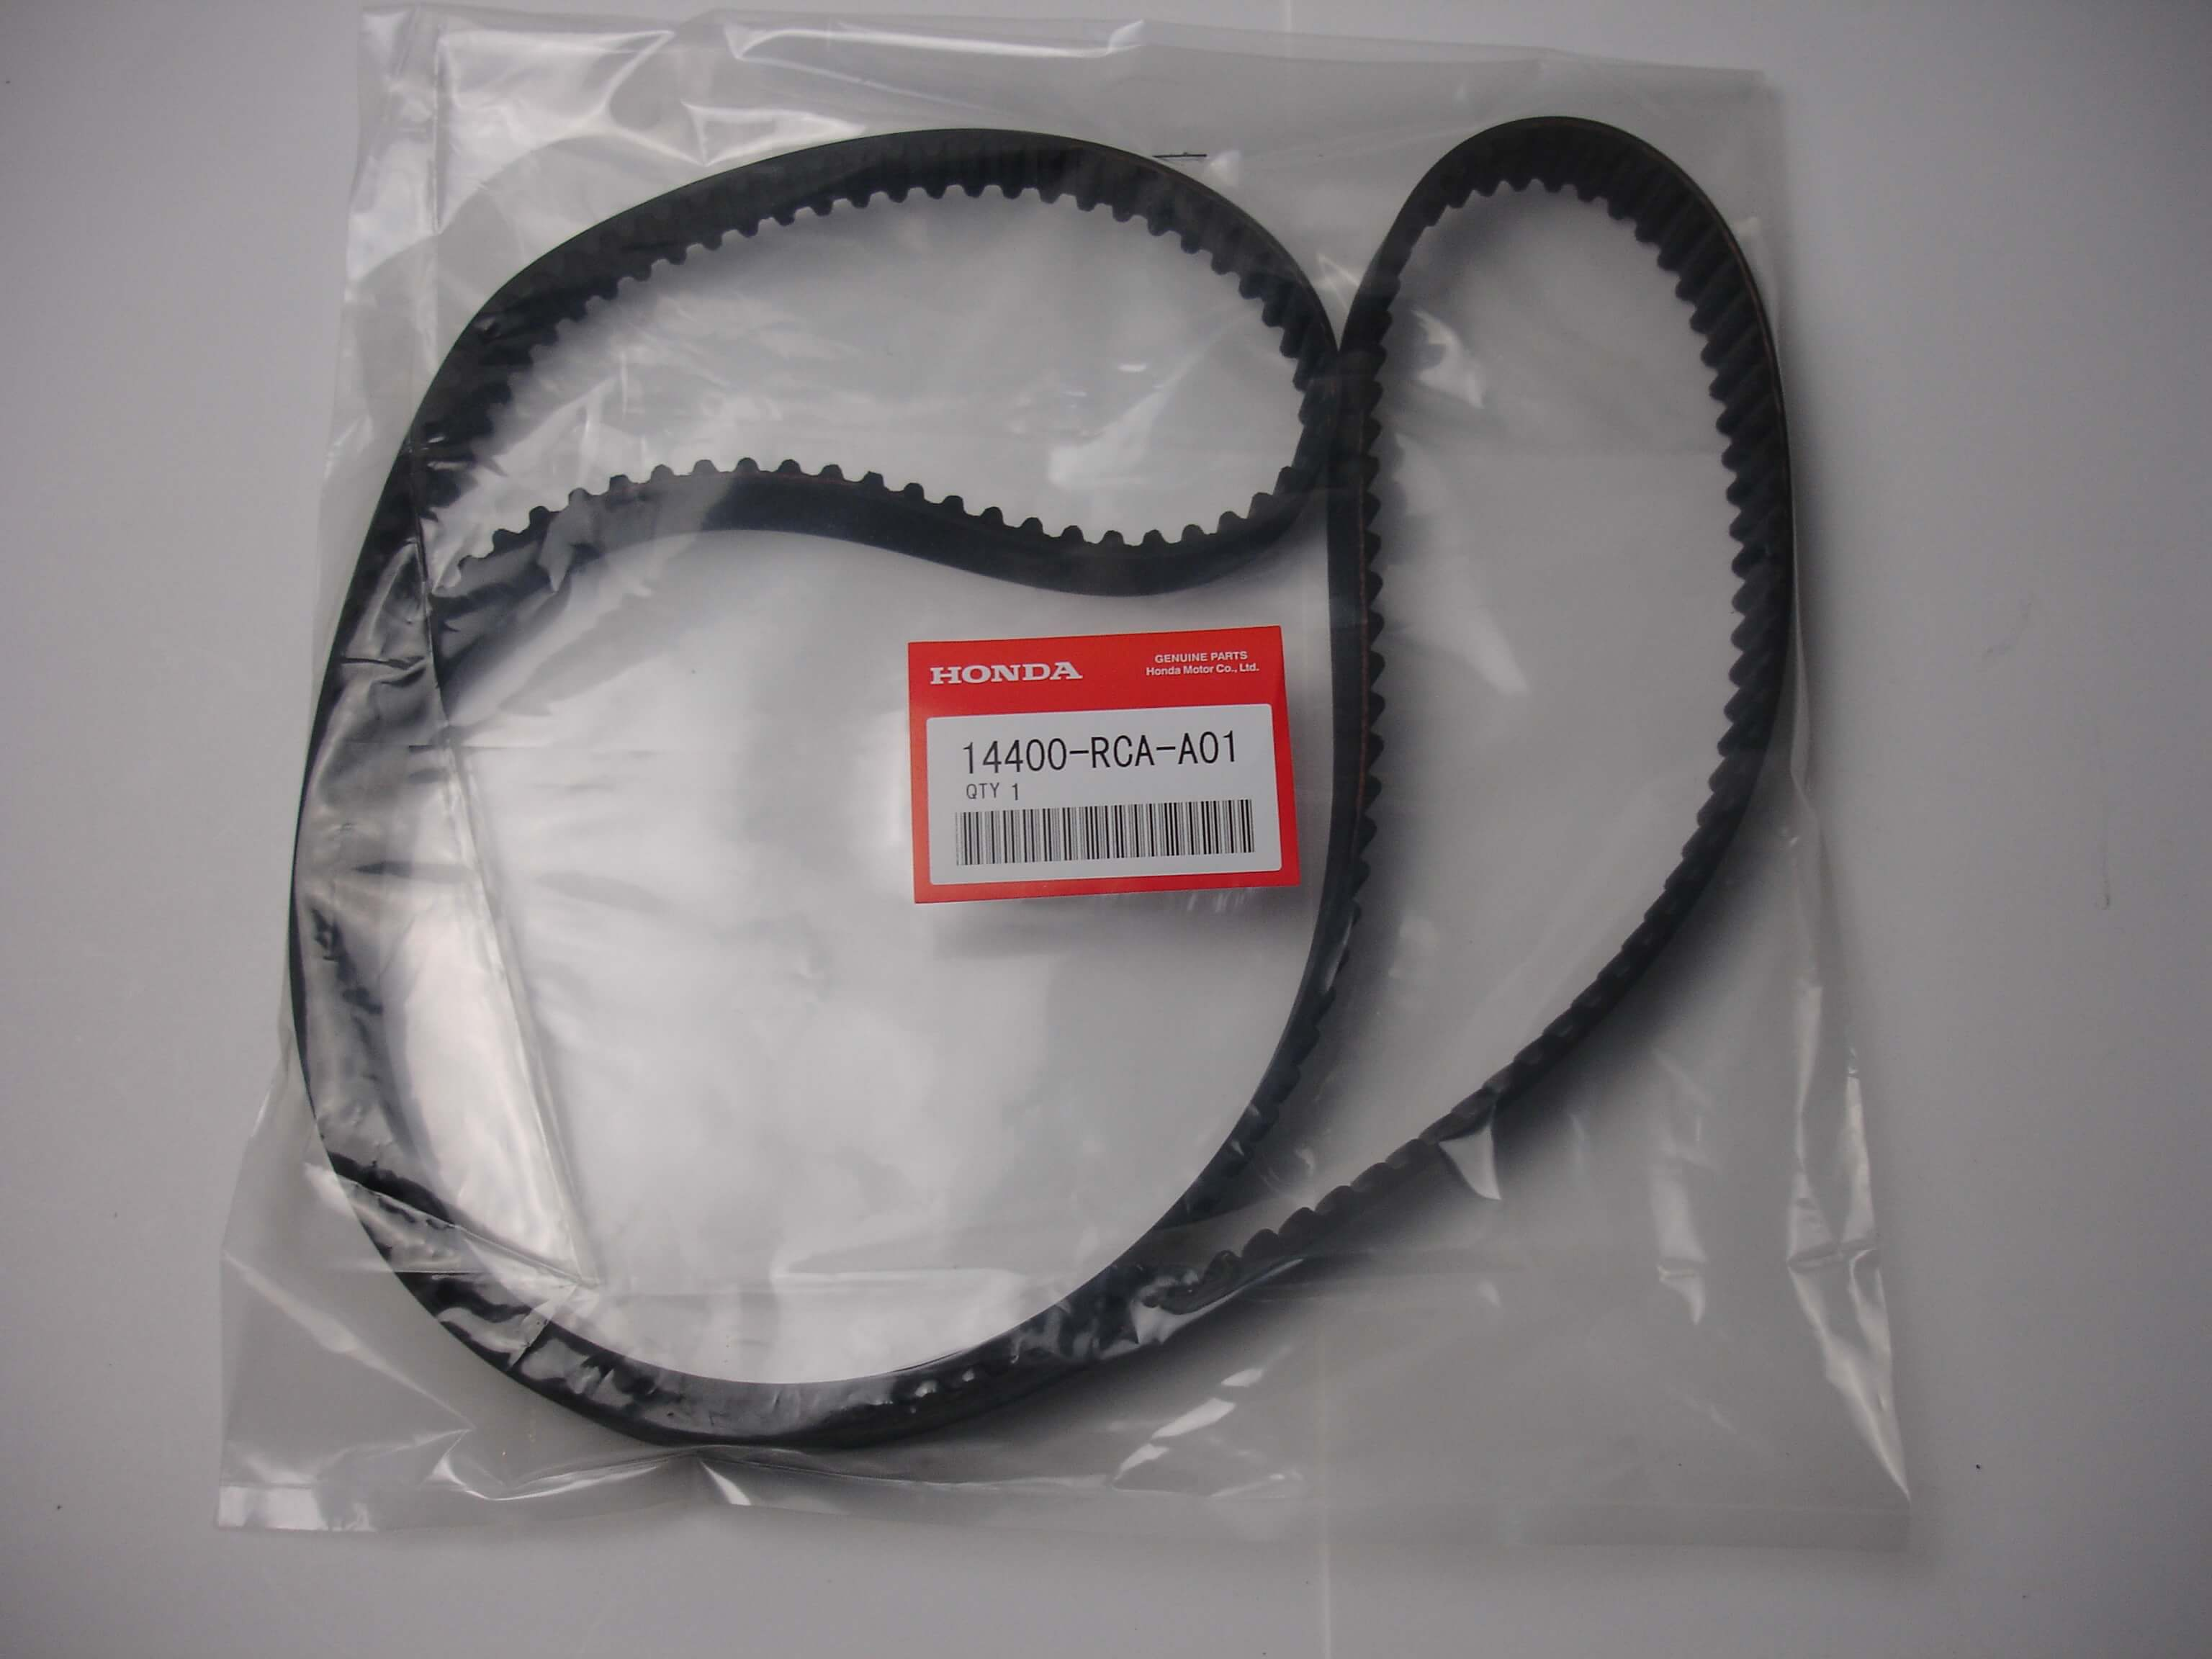 OEM Timing Belt for Honda 3.5L V6 part number 14400-RCA-A01 197YU20. 2003-2014 Accord including Hybrid. 2010-2014 Crosstour with V6. 2005-2014 Odyssey. 2006-2014 Ridgeline. 2005-2014 Pilot.